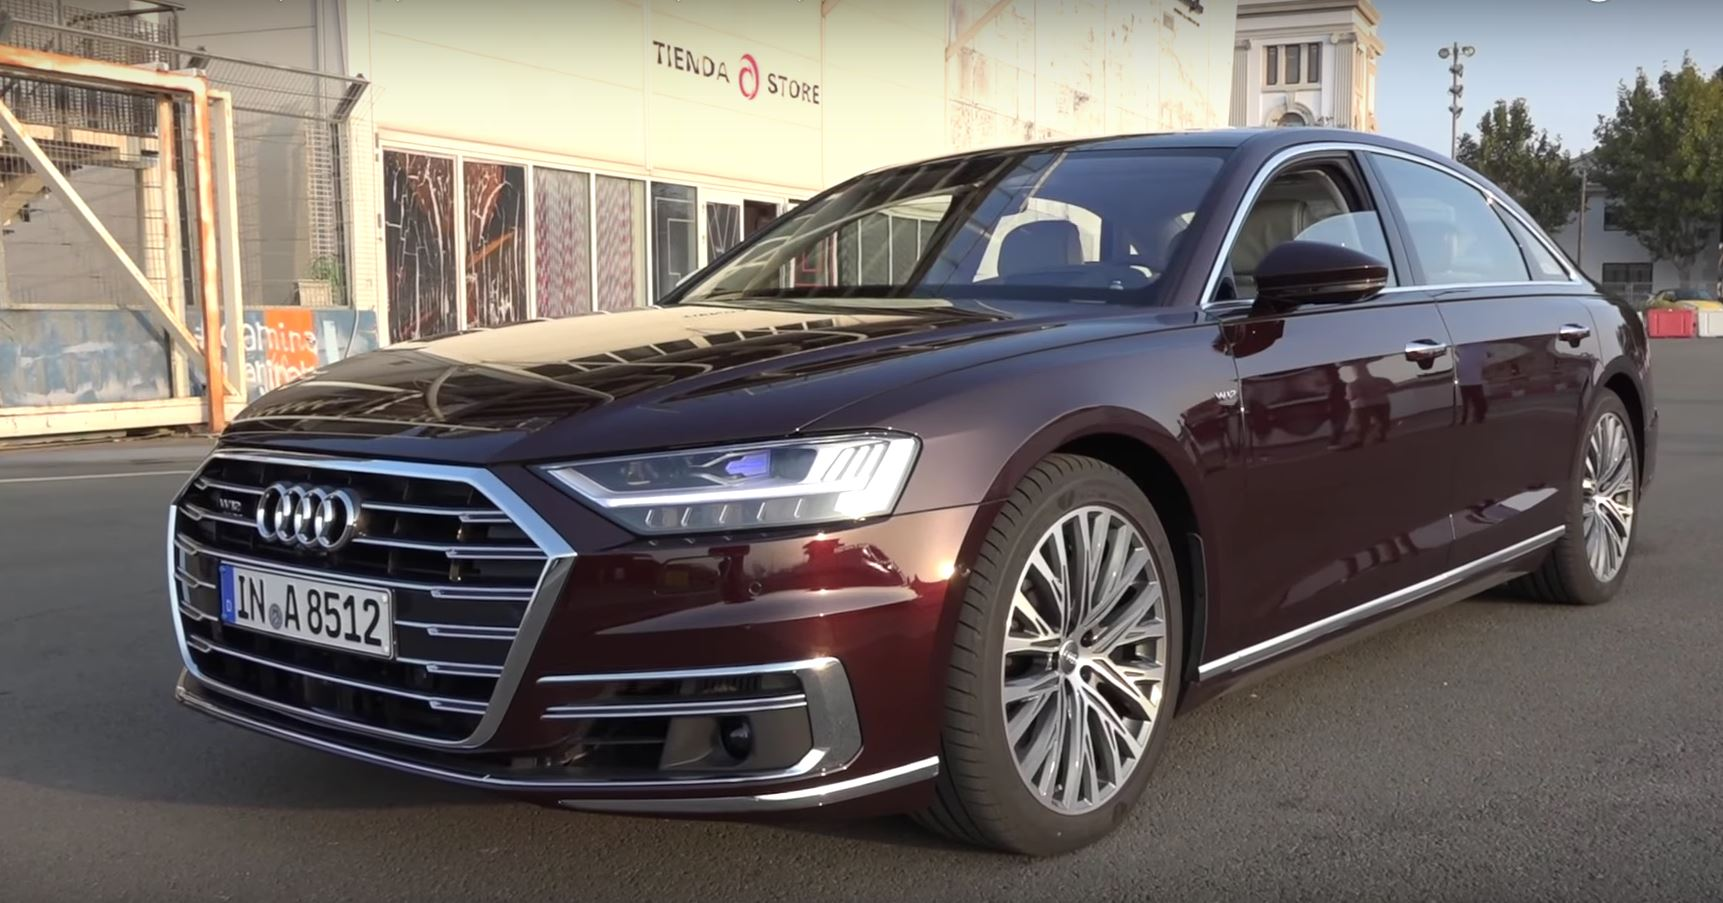 2018-audi-a8-w12-has-585-hp-but-it-doesn-t-sound-that-good-121643_1.jpg